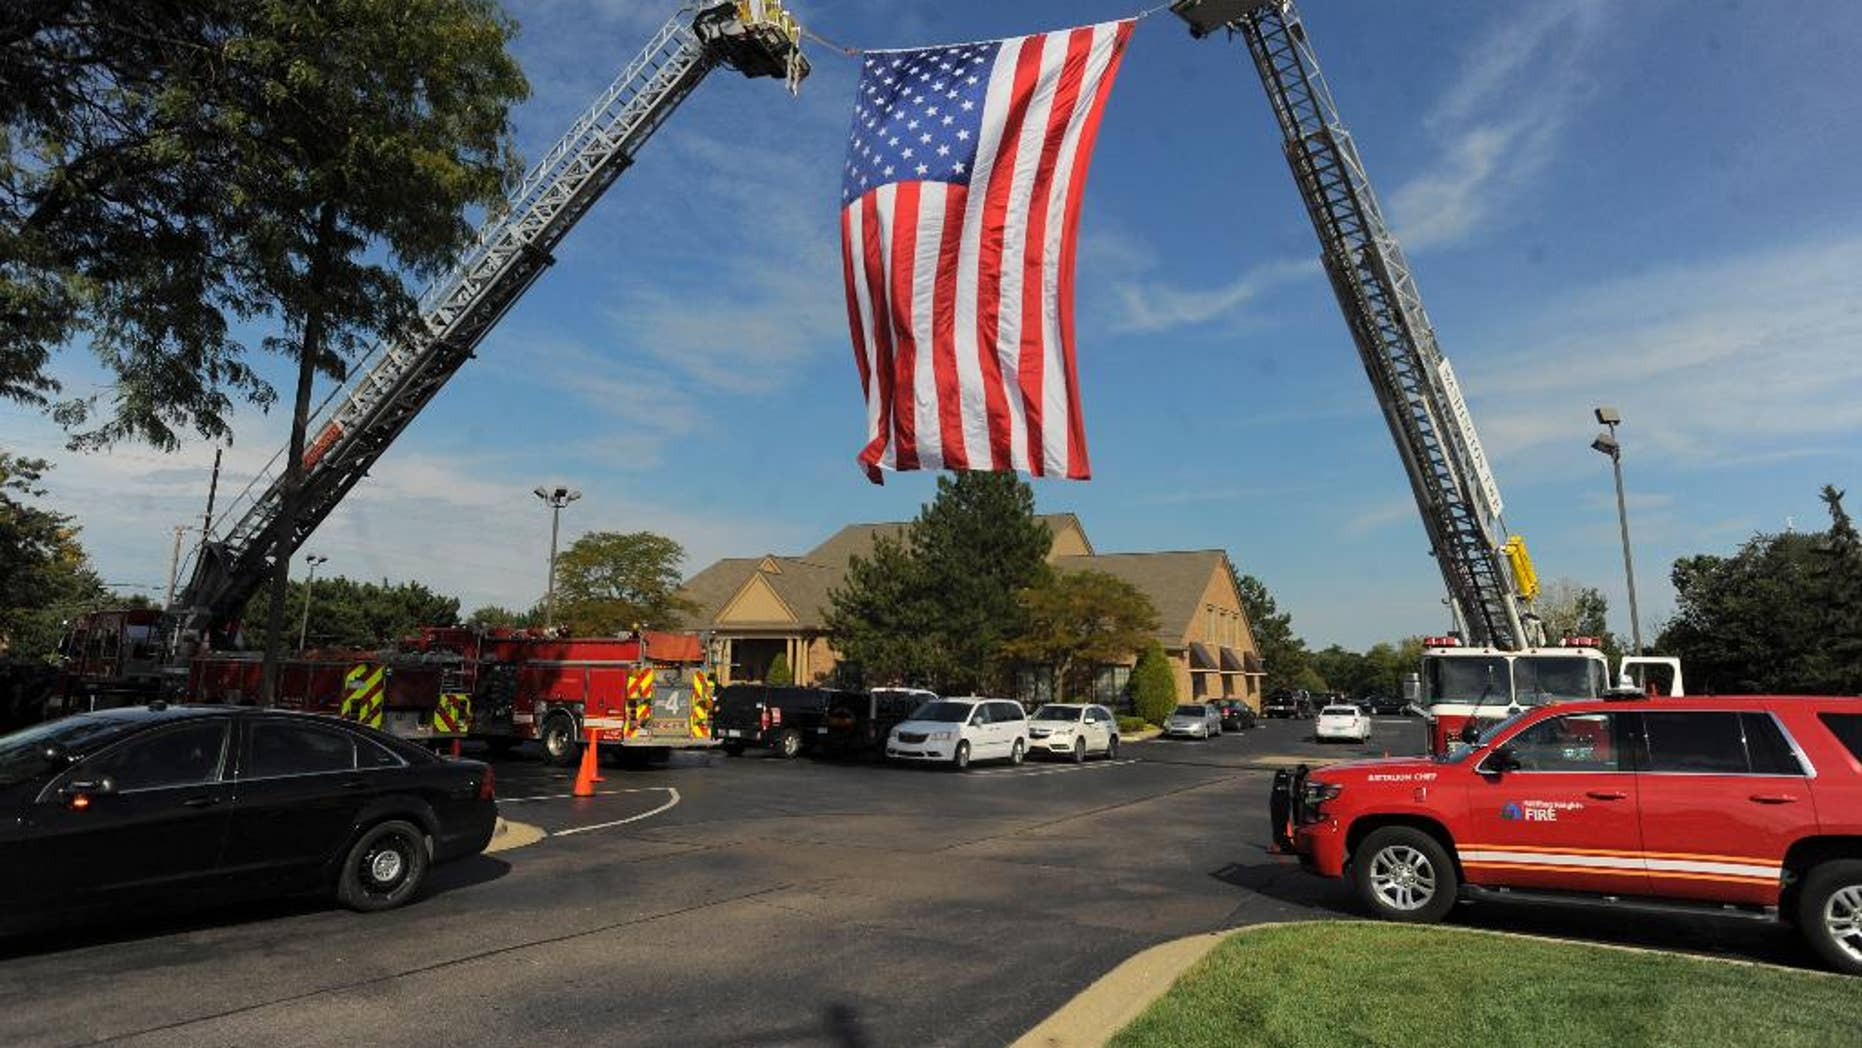 A large American flag is unfurled by Sterling Heights and Washington Twp. Fire Departments as mourners begin to arrive for visitation for Detroit Police officer Ken Steil in Sterling Heights, Mich., Wednesday Sept. 21, 2016.  Steil died unexpectedly Saturday of a blood clot, five days after being shot in the shoulder.  (Steve Perez/Detroit News via AP)